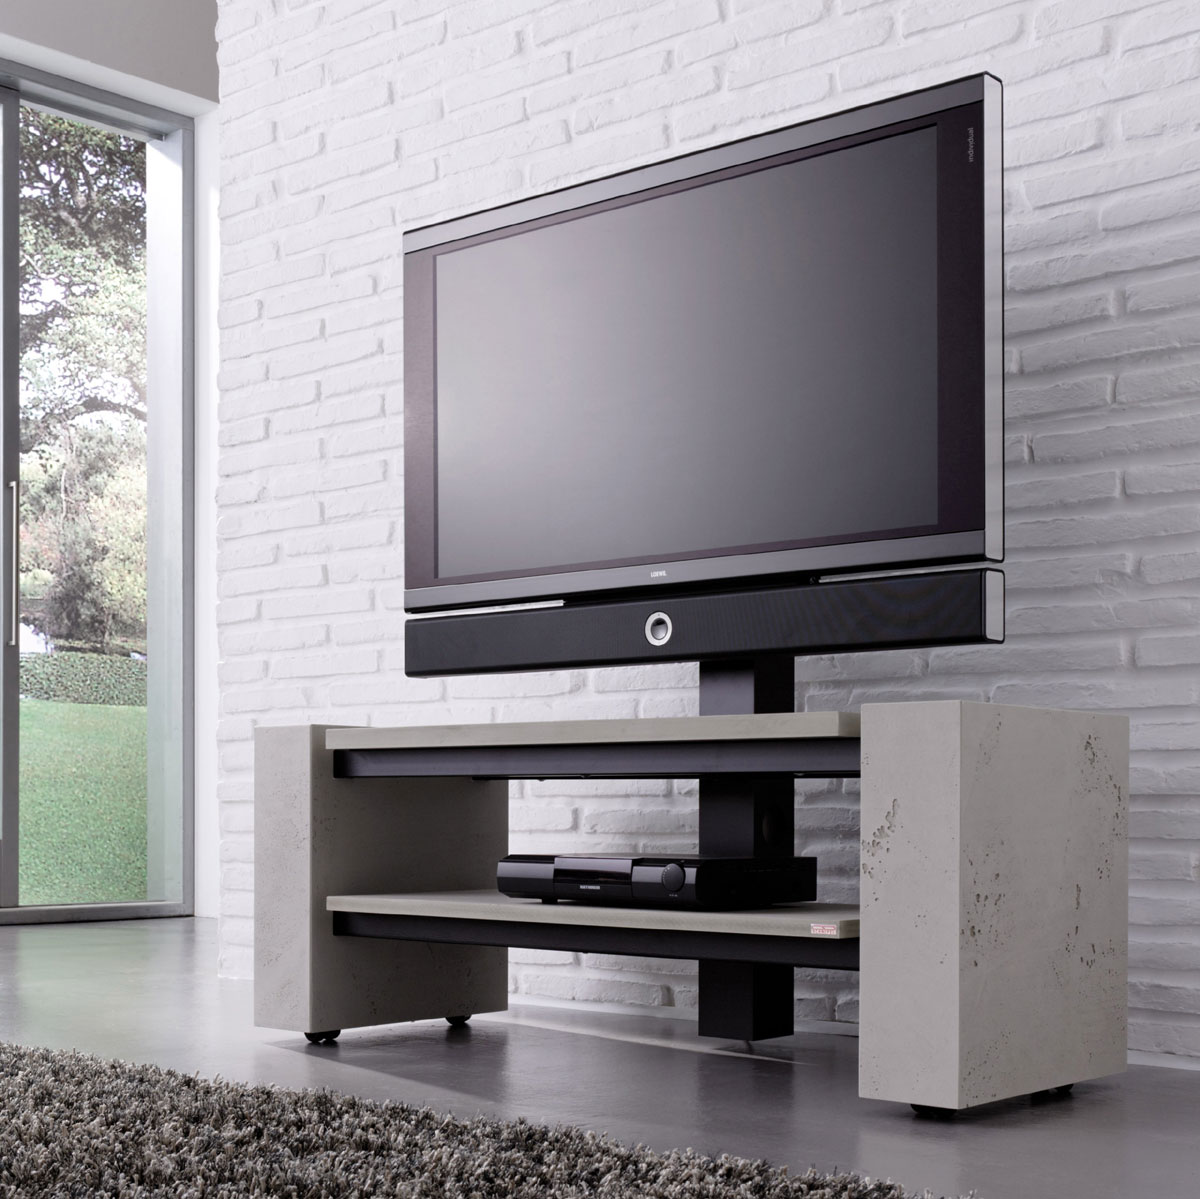 schnepel tv m bel archive tv m bel und hifi m bel guide. Black Bedroom Furniture Sets. Home Design Ideas